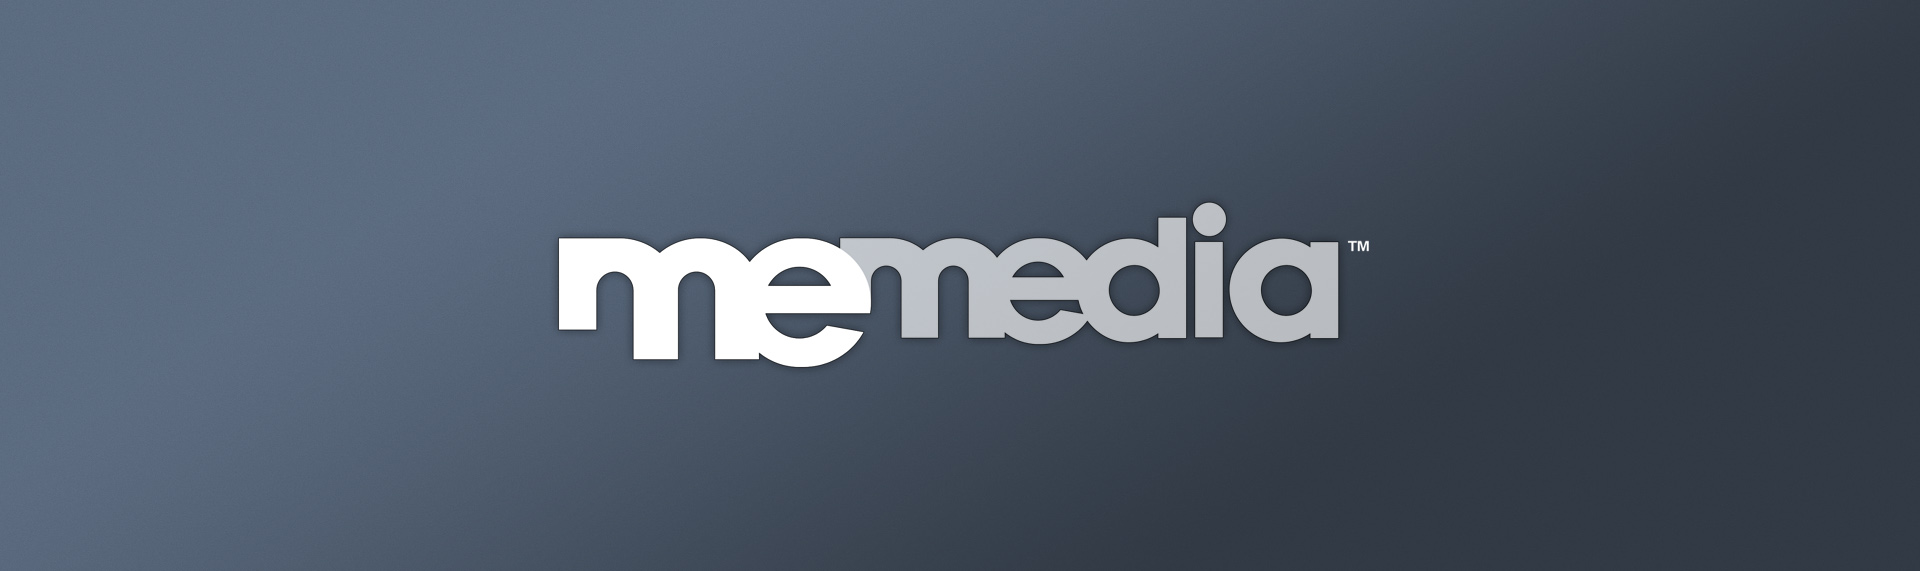 MeMedia  Brand Identity Design  MeMedia, Inc. contracted The Skins Factory for a complete design suite which included the design & development of the user interface for their breakthrough application, MeMe and both their corporate and product name branding. Our creative team designed a pair of synergistic logos that not only feel connected, but deliver an appealing presence to both corporate users and consumers.